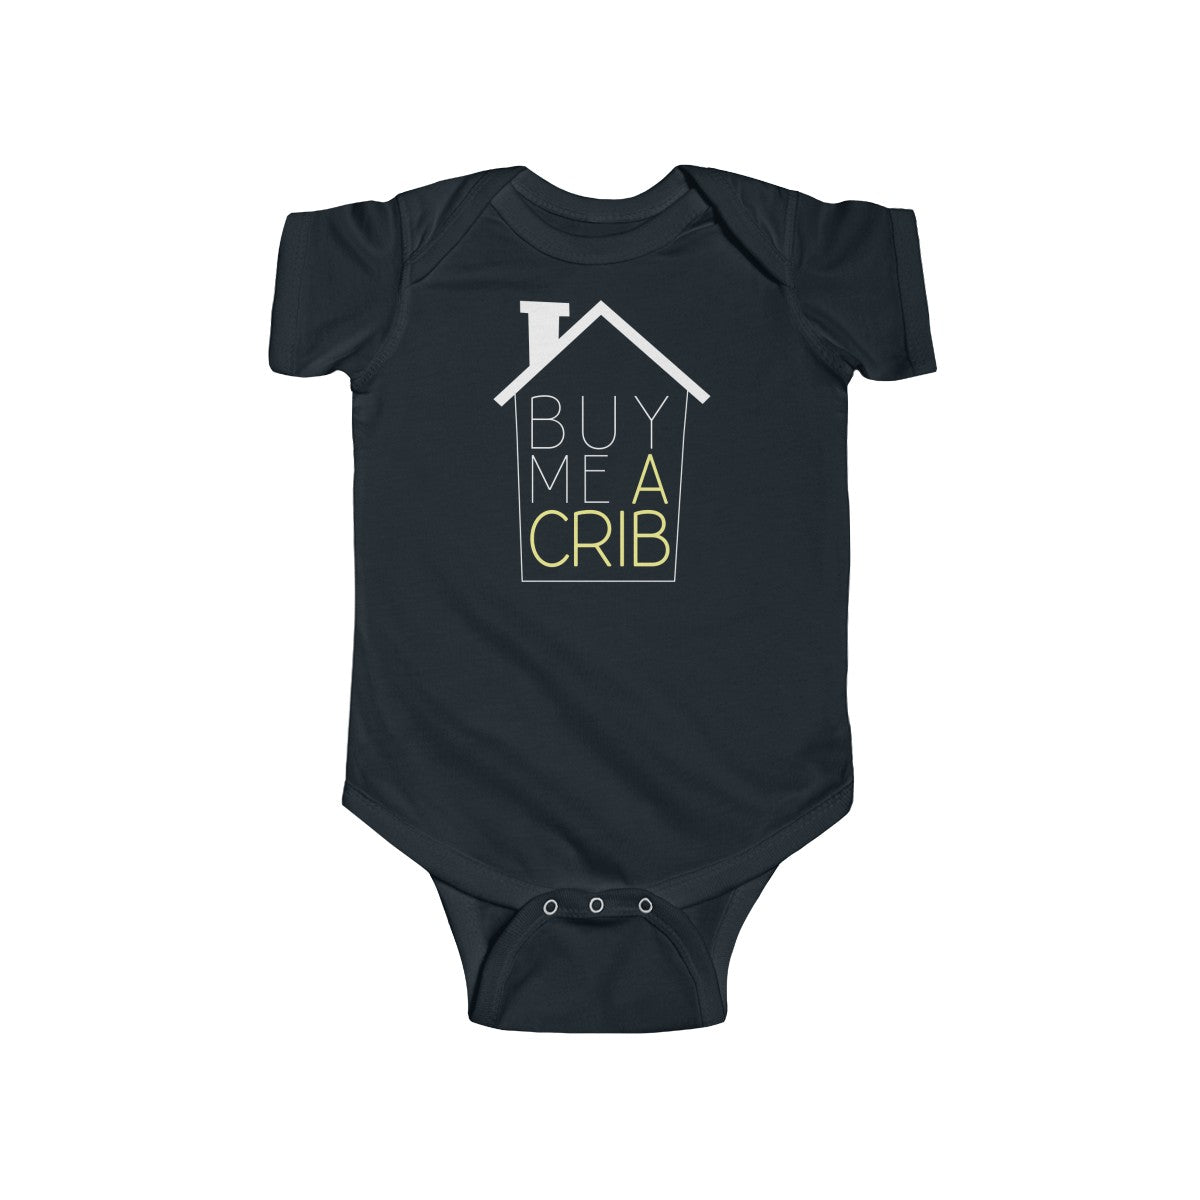 Buy Me A Crib™ Infant Short Sleeve Onesie